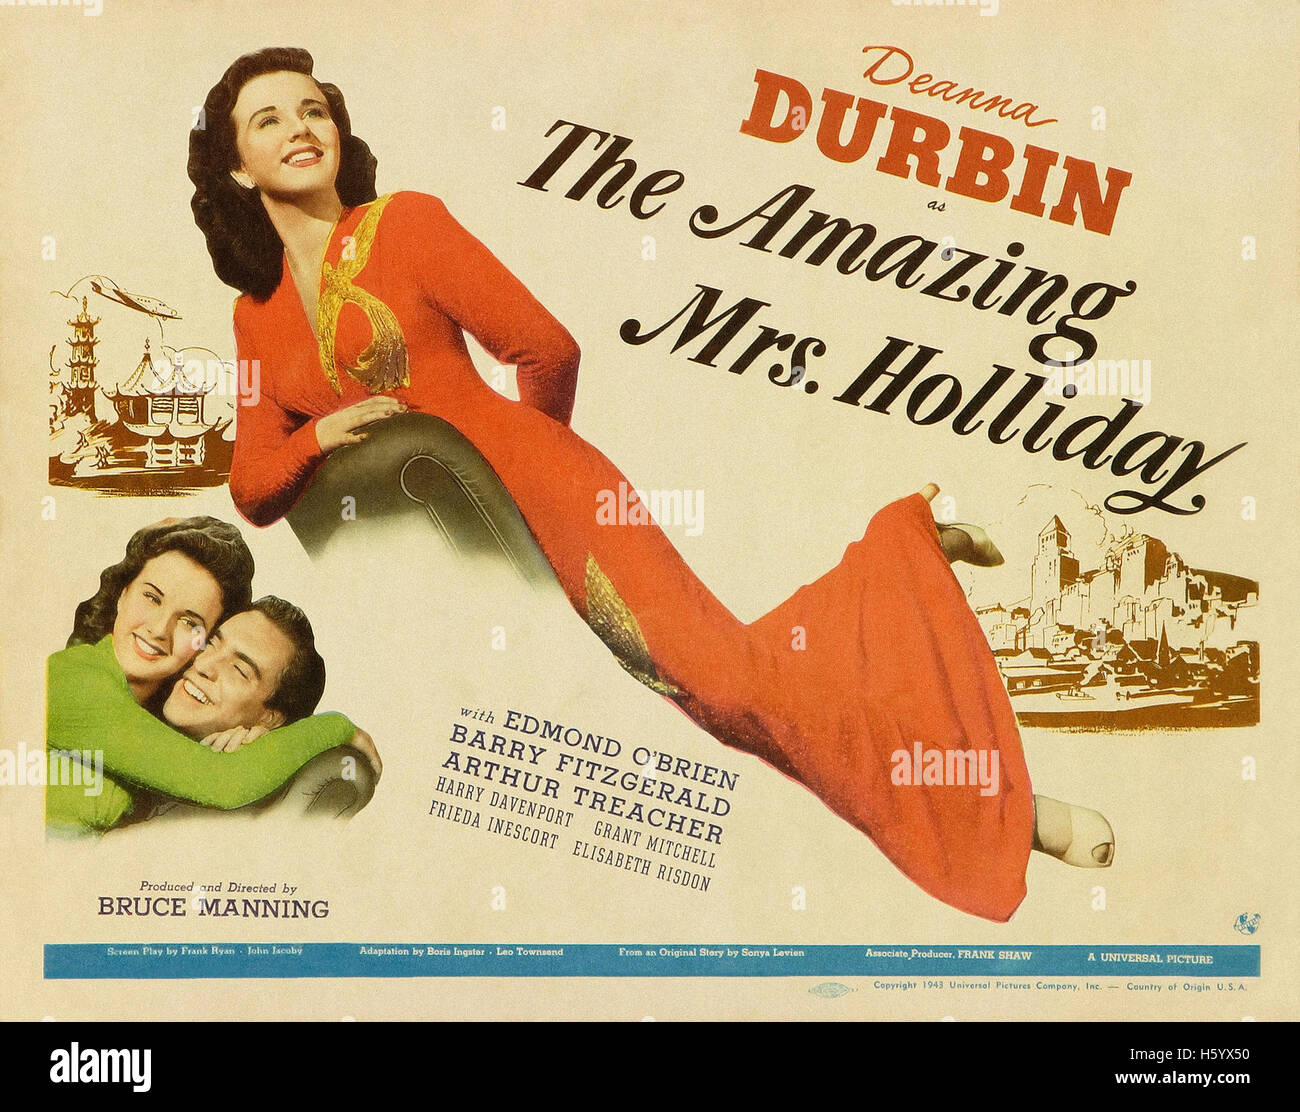 The Amazing Mrs. Holliday - Movie Poster - Stock Image